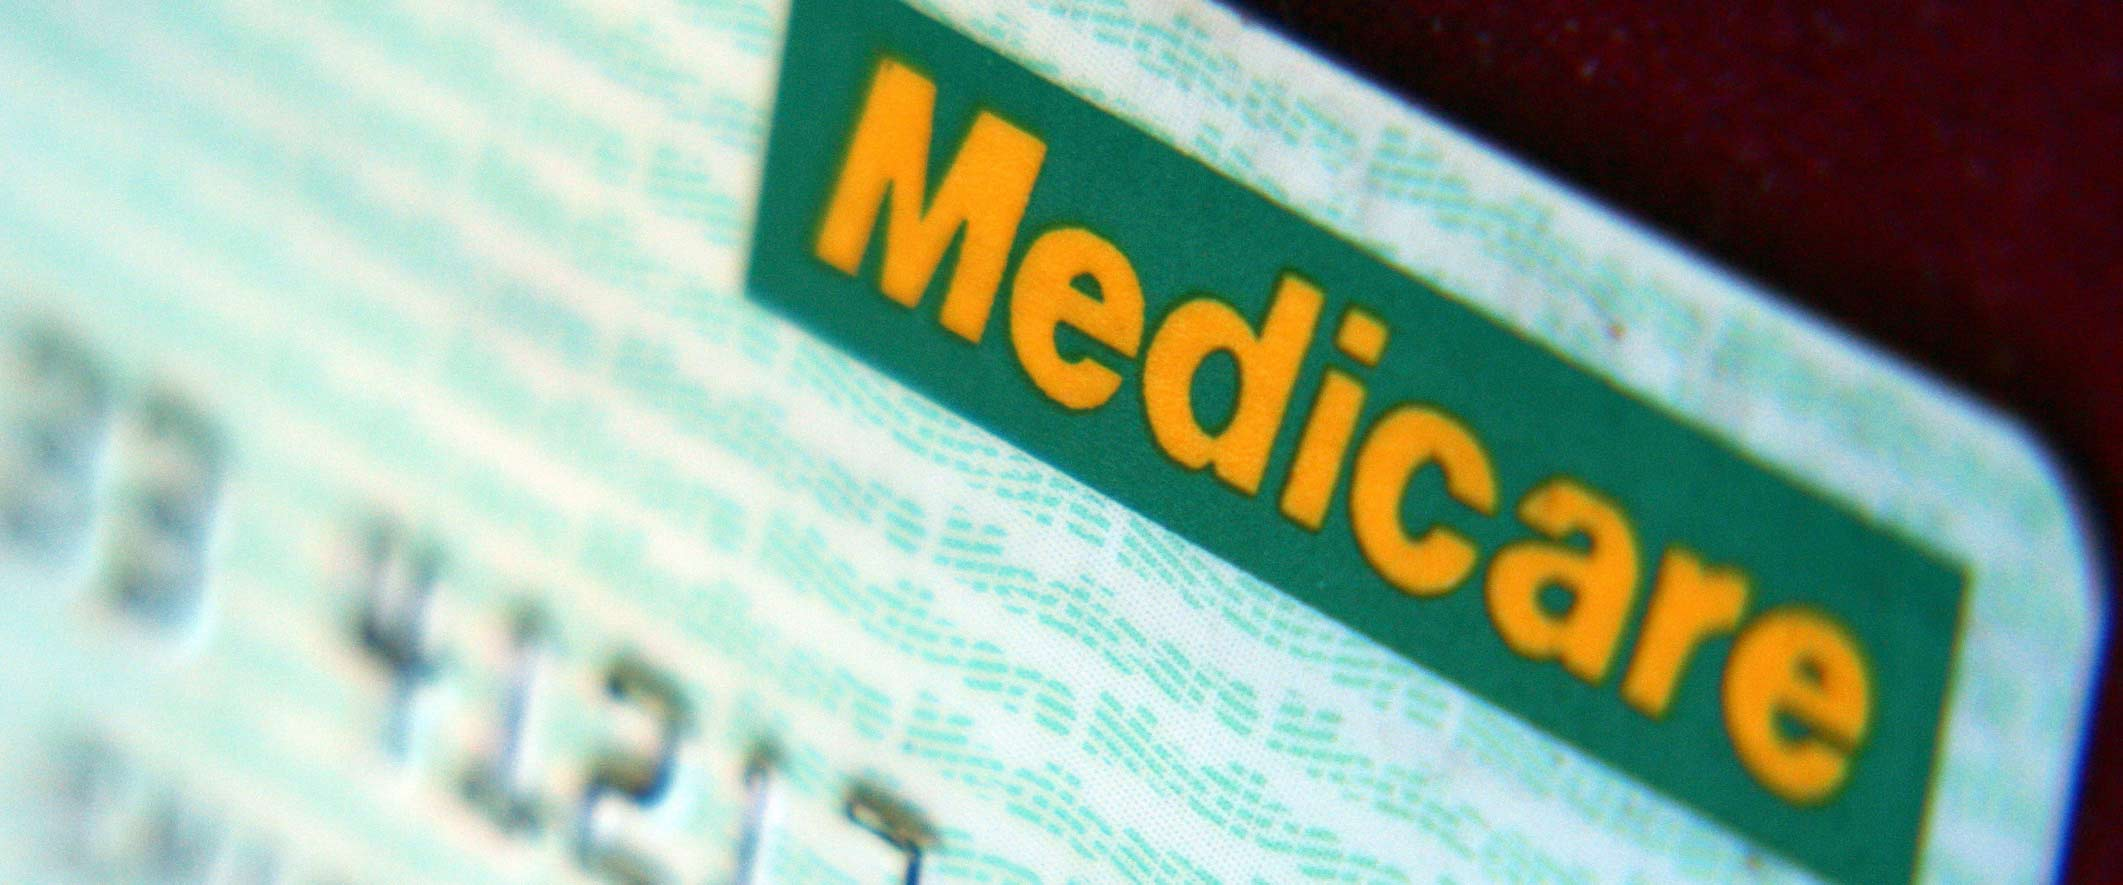 Medicare Premiums To Jump In But Social Security Benefits Stay Flat